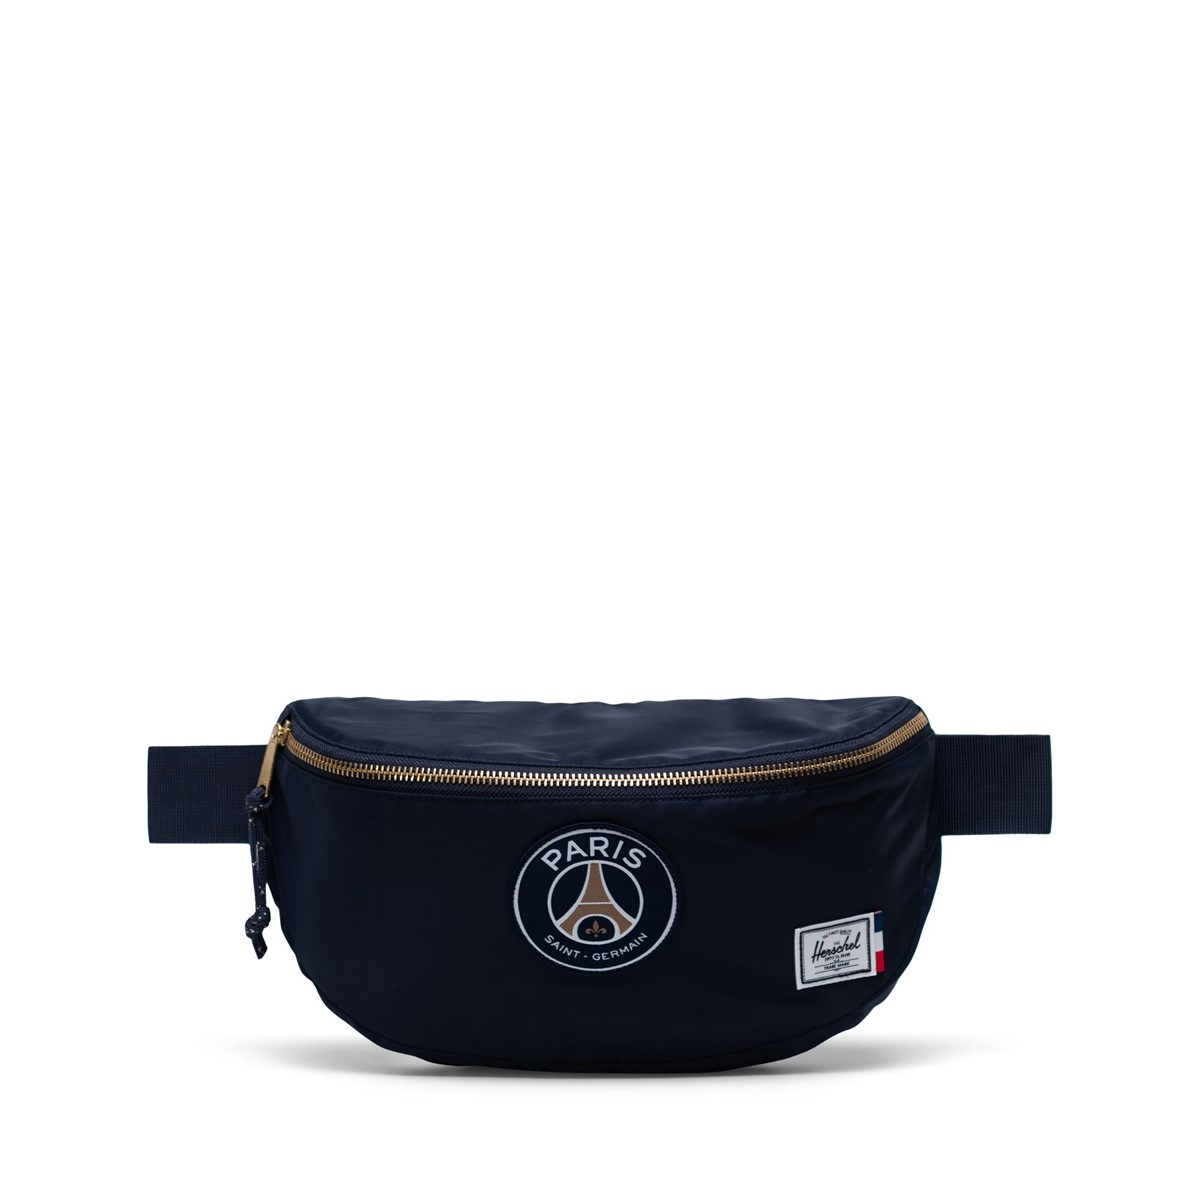 Paris Saint-Germain sac de taille Sixteen marine